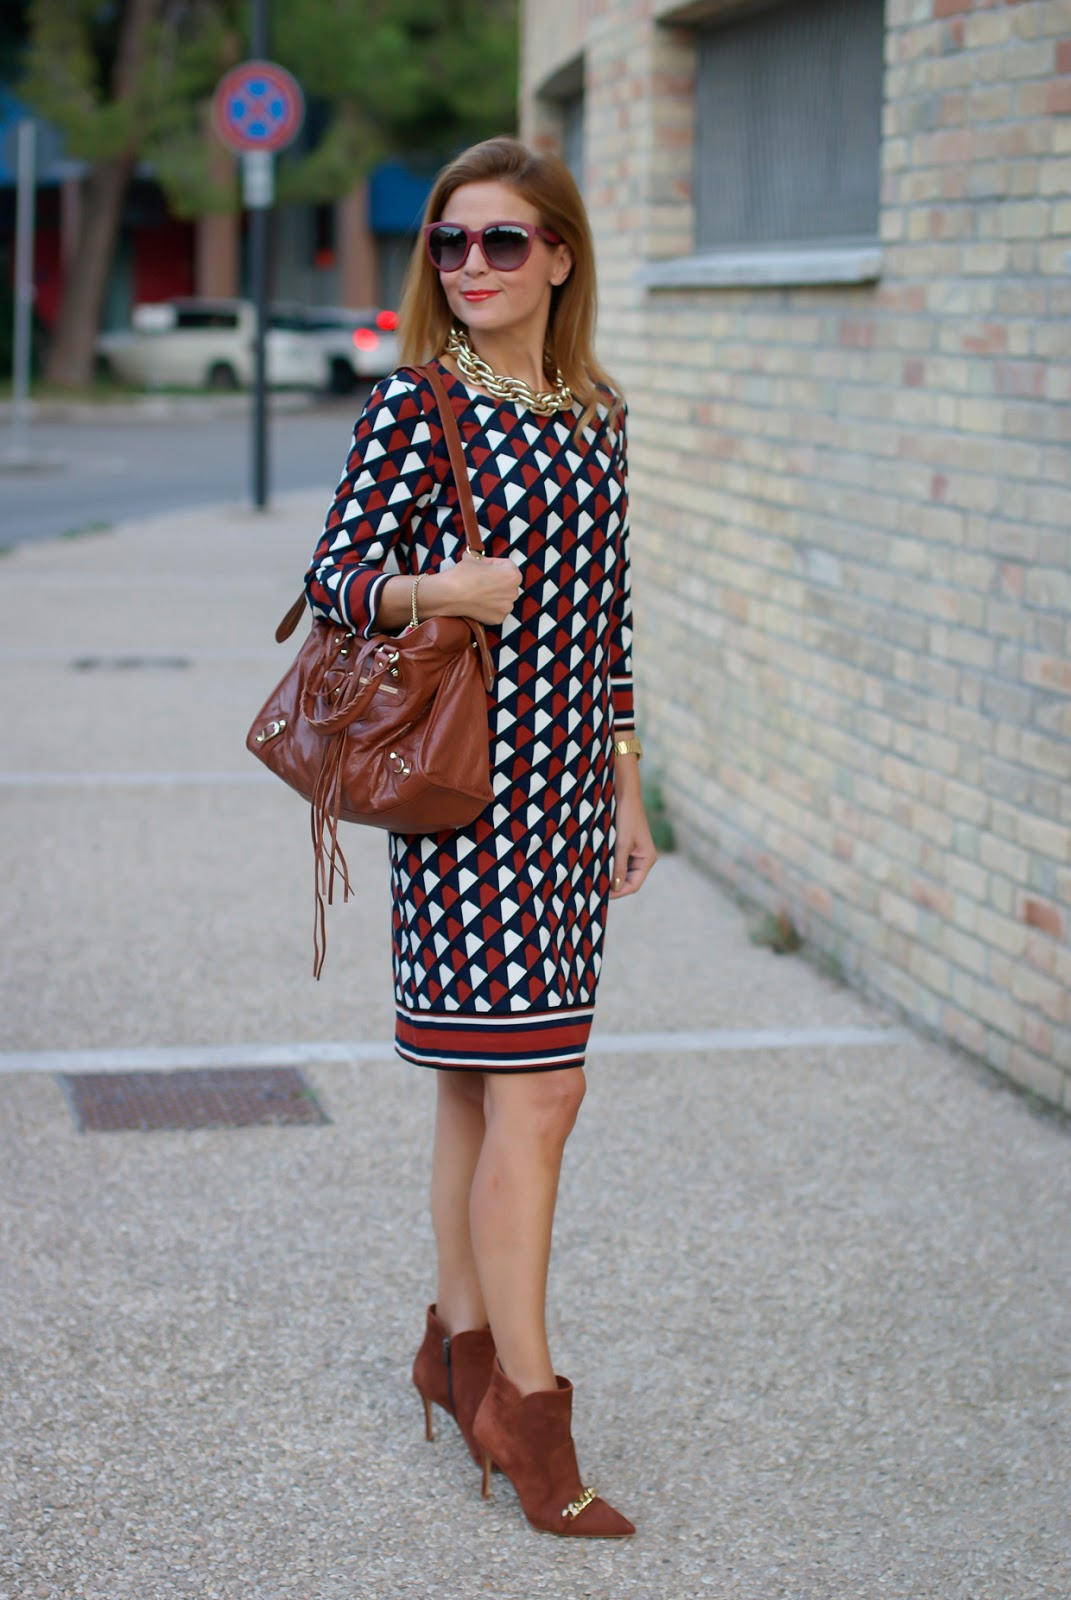 1.2.3 Paris Fall/Winter geometric print dress, Icone shoes on Fashion and Cookies fashion blog, fashion blogger style